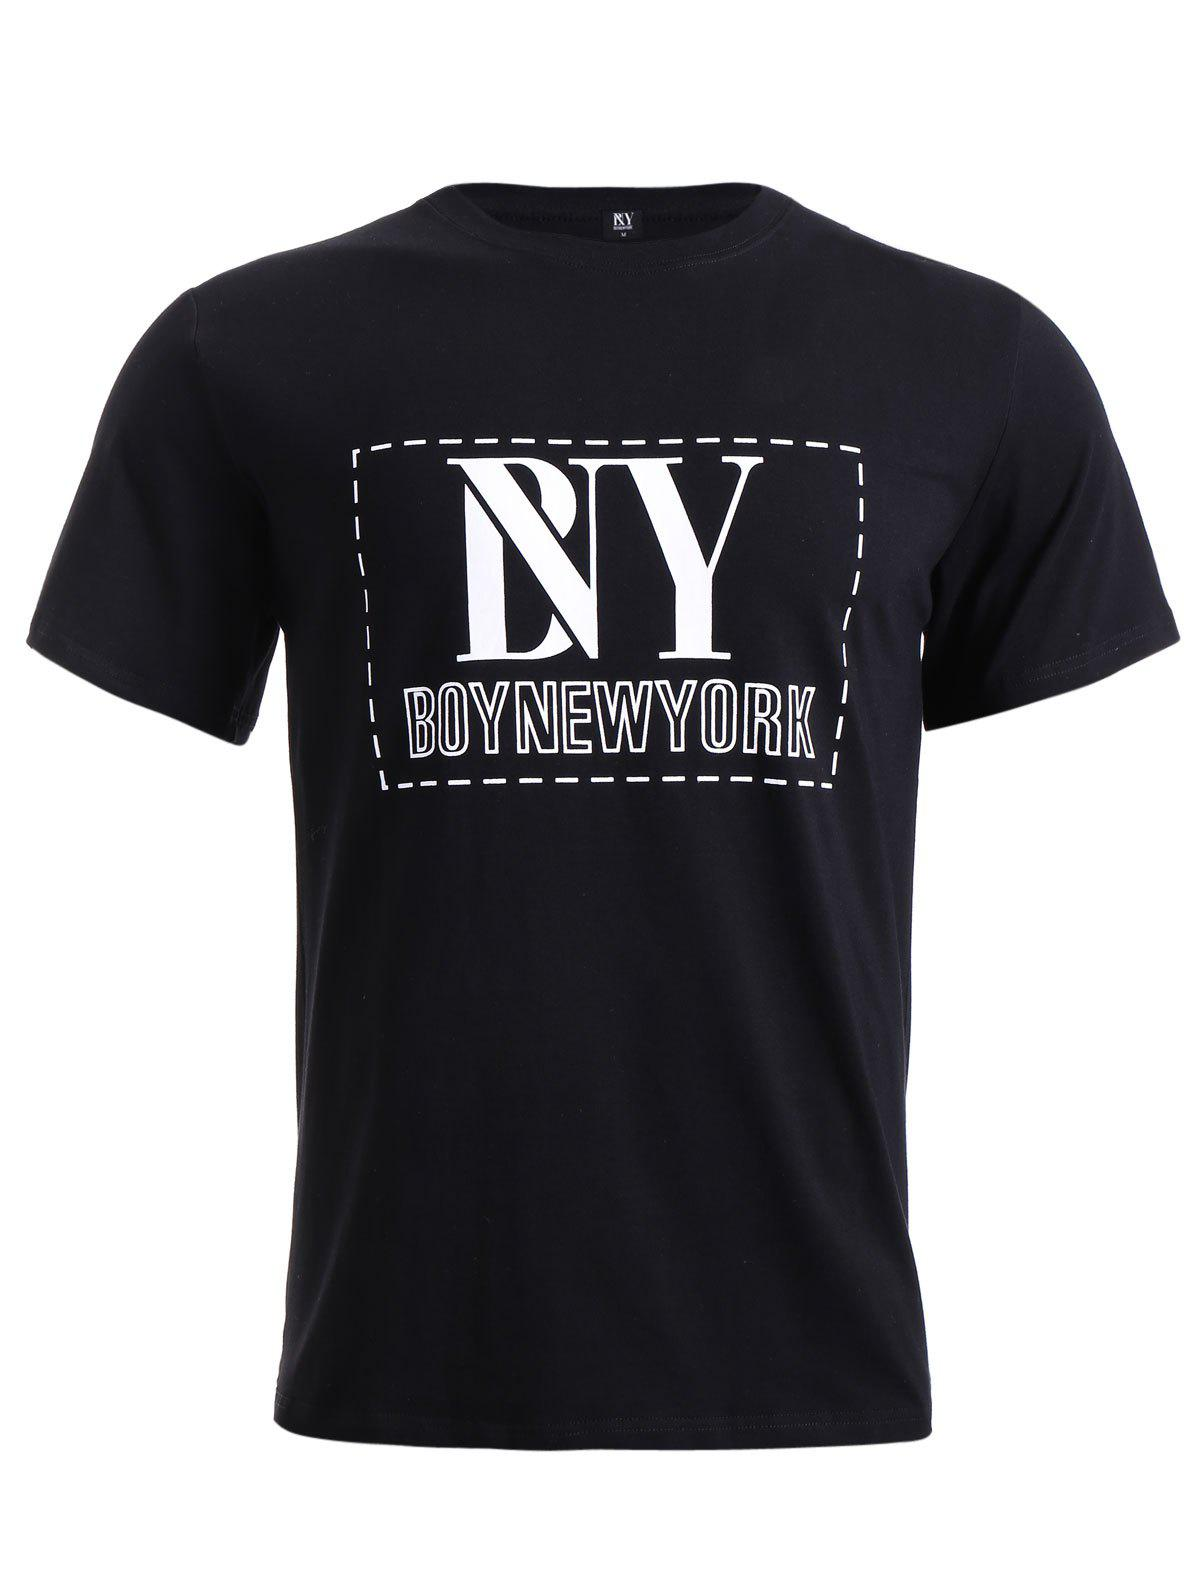 BoyNewYork Solid Color Short Sleeve T-Shirt 1 18 sports car model alloy static cars model toys hardcover edition locomotive office decoration business gift